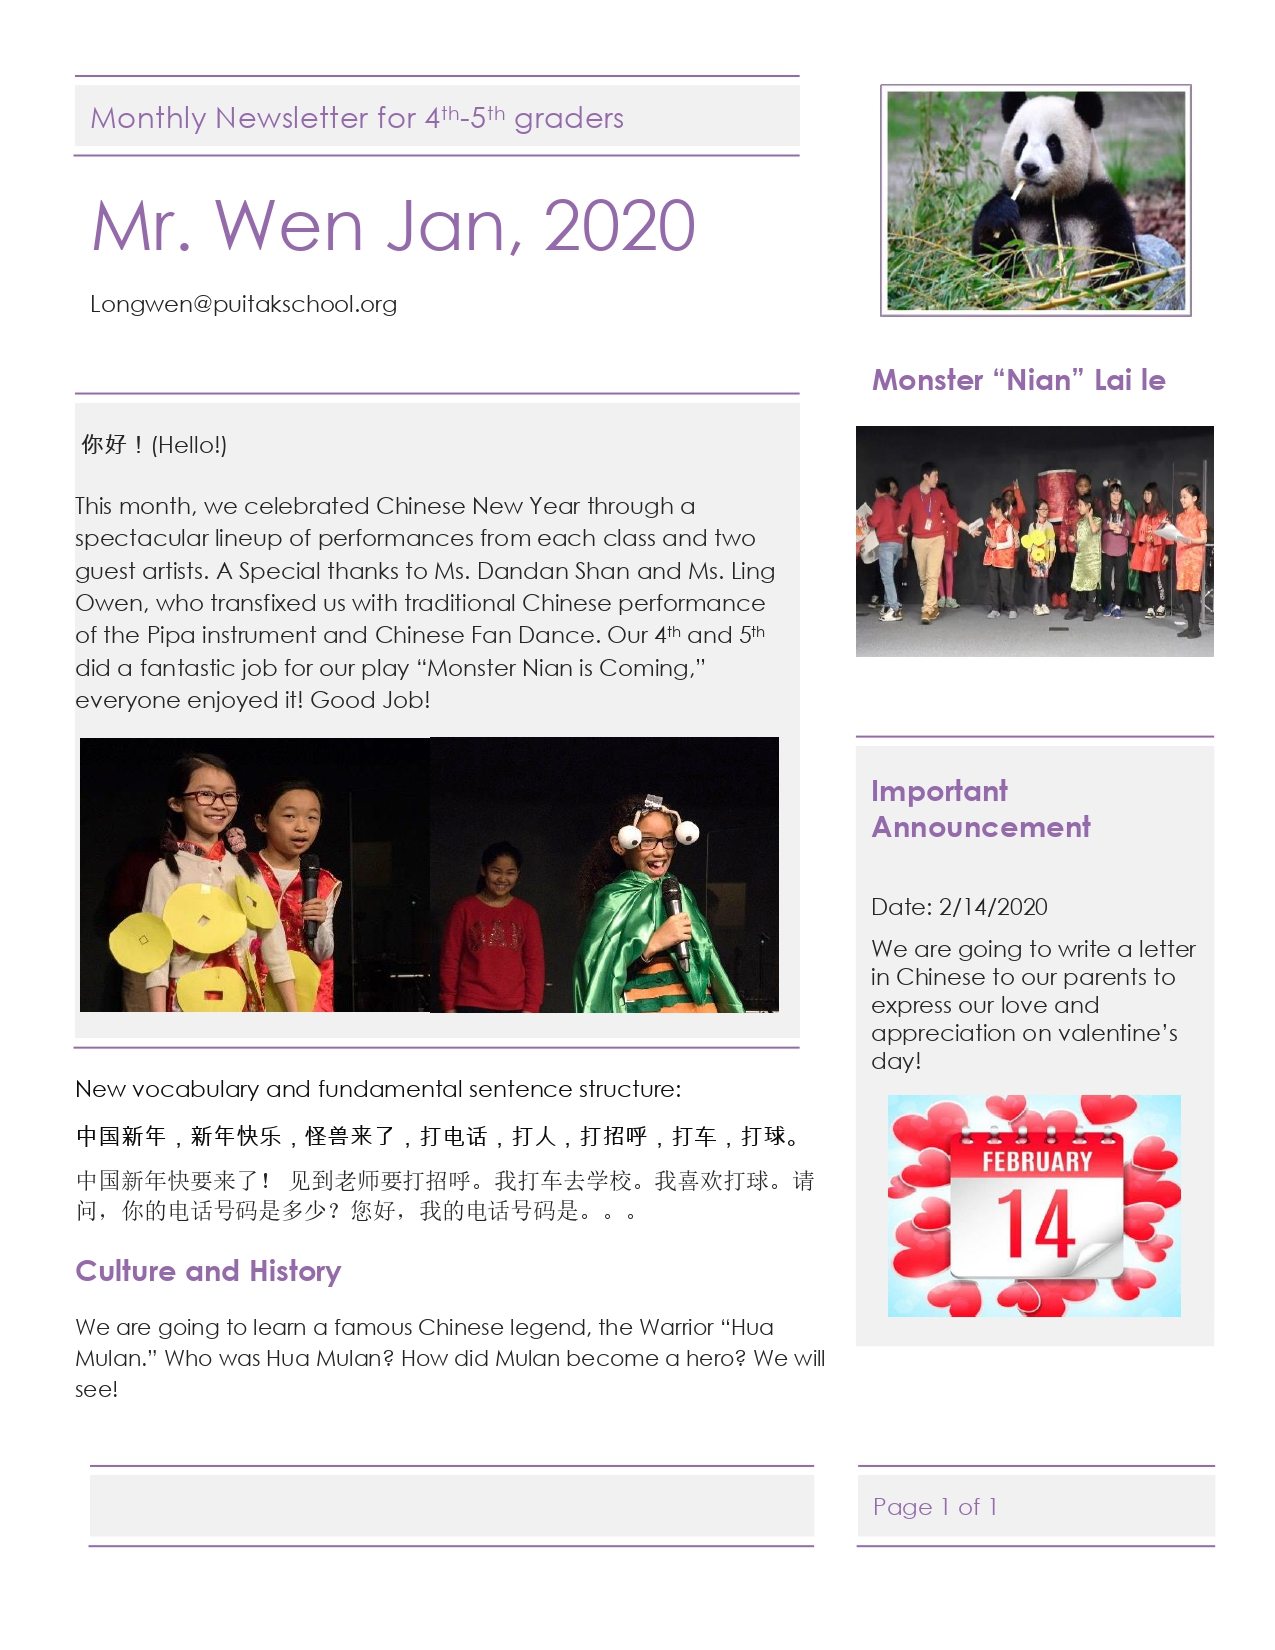 JackNewsletterJanuary2020 for 4th-5th gr